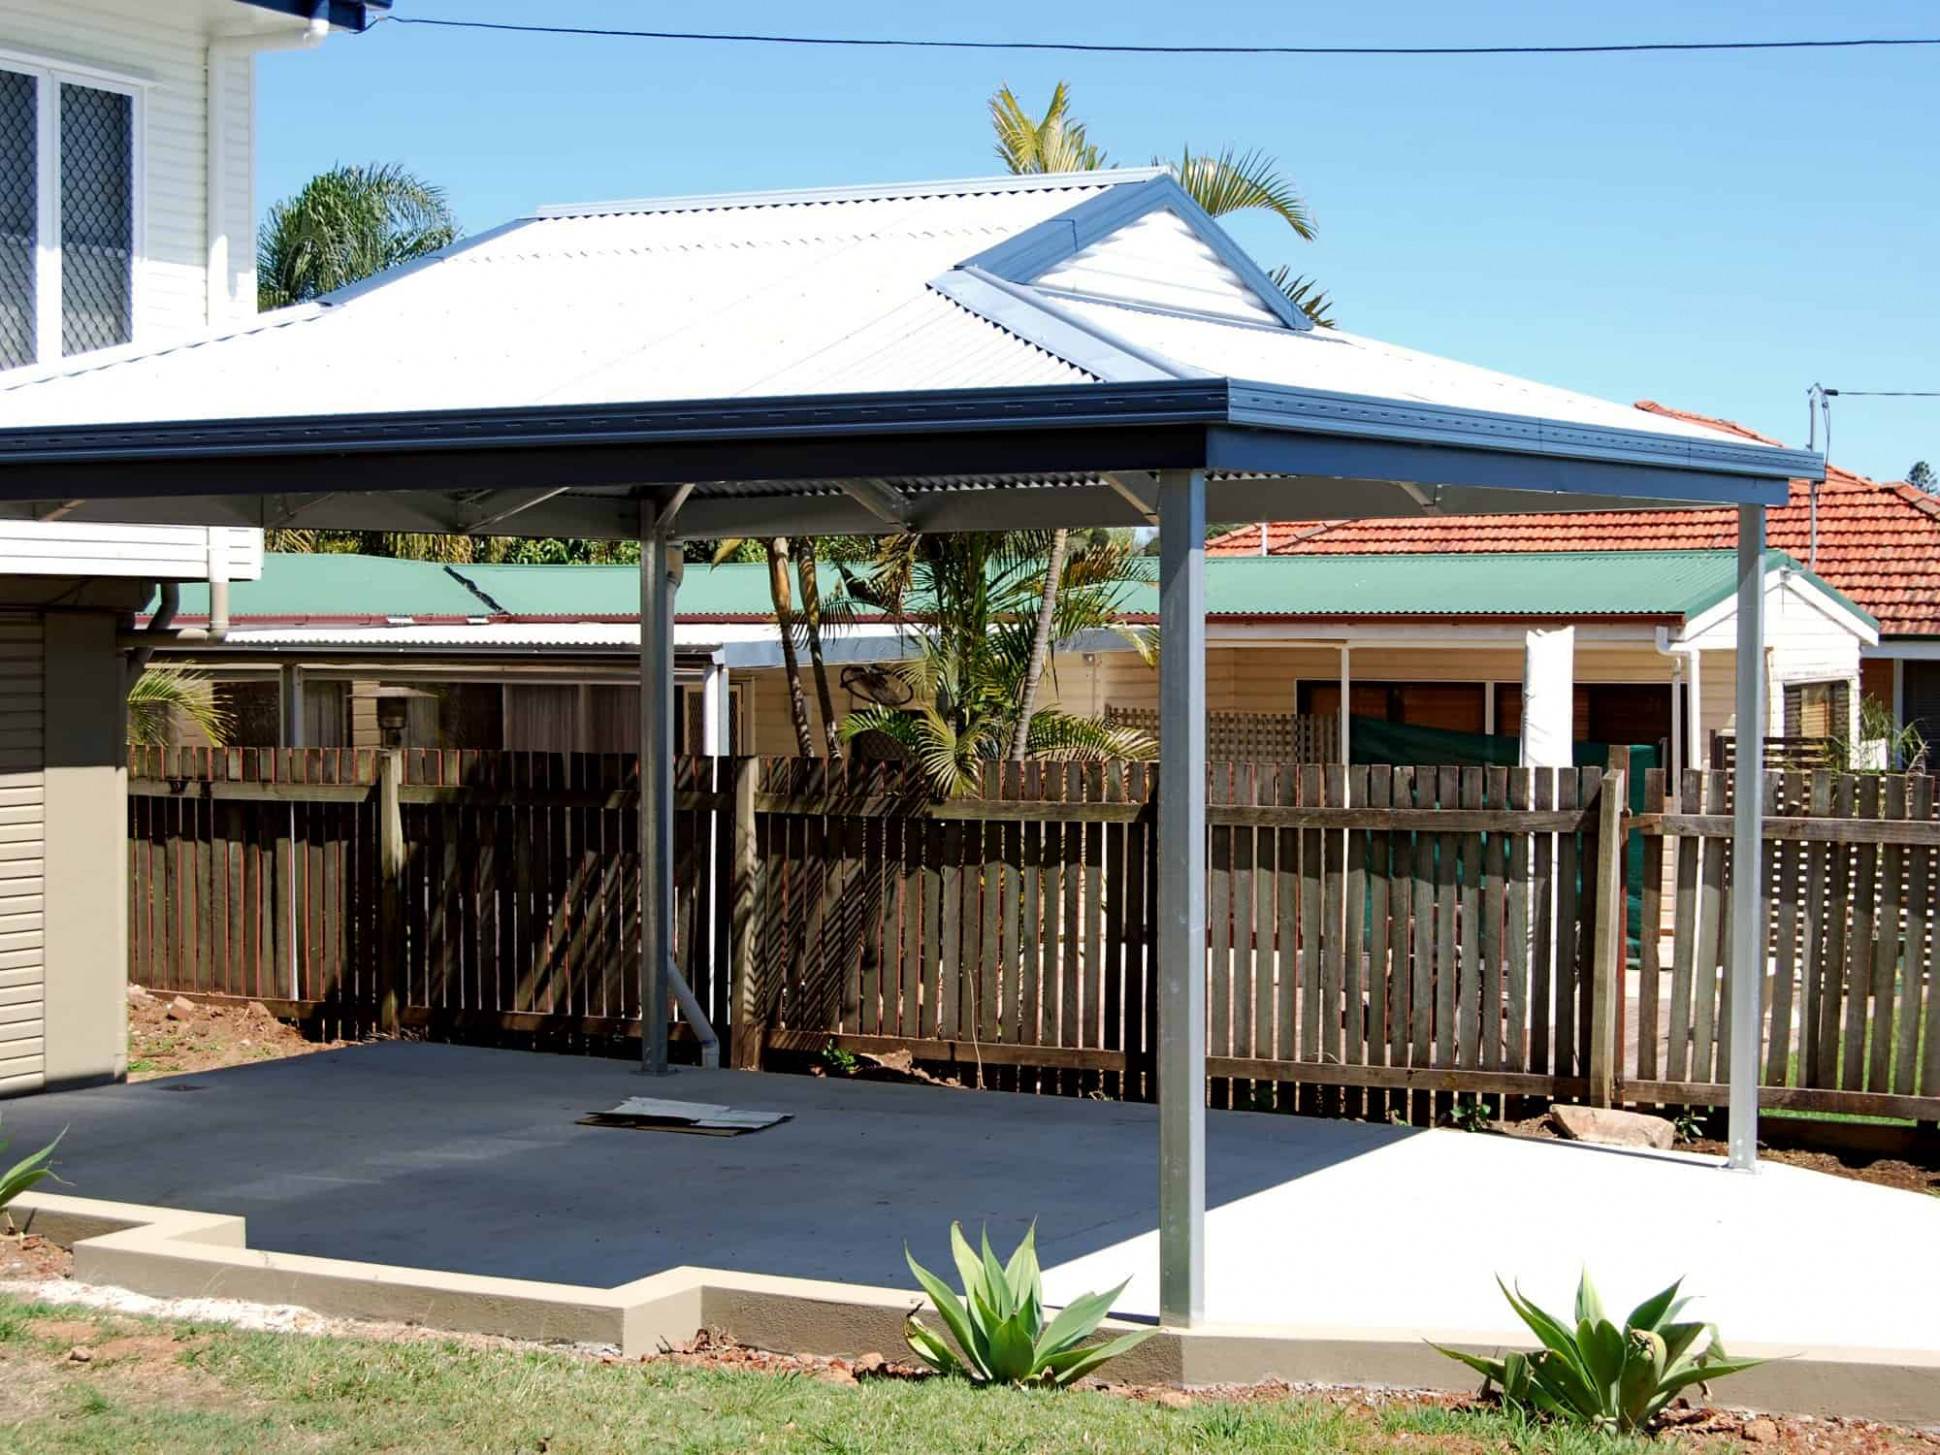 Carports | Any Size, Any Style | Carport Kits Or Installed Carport Modern Design